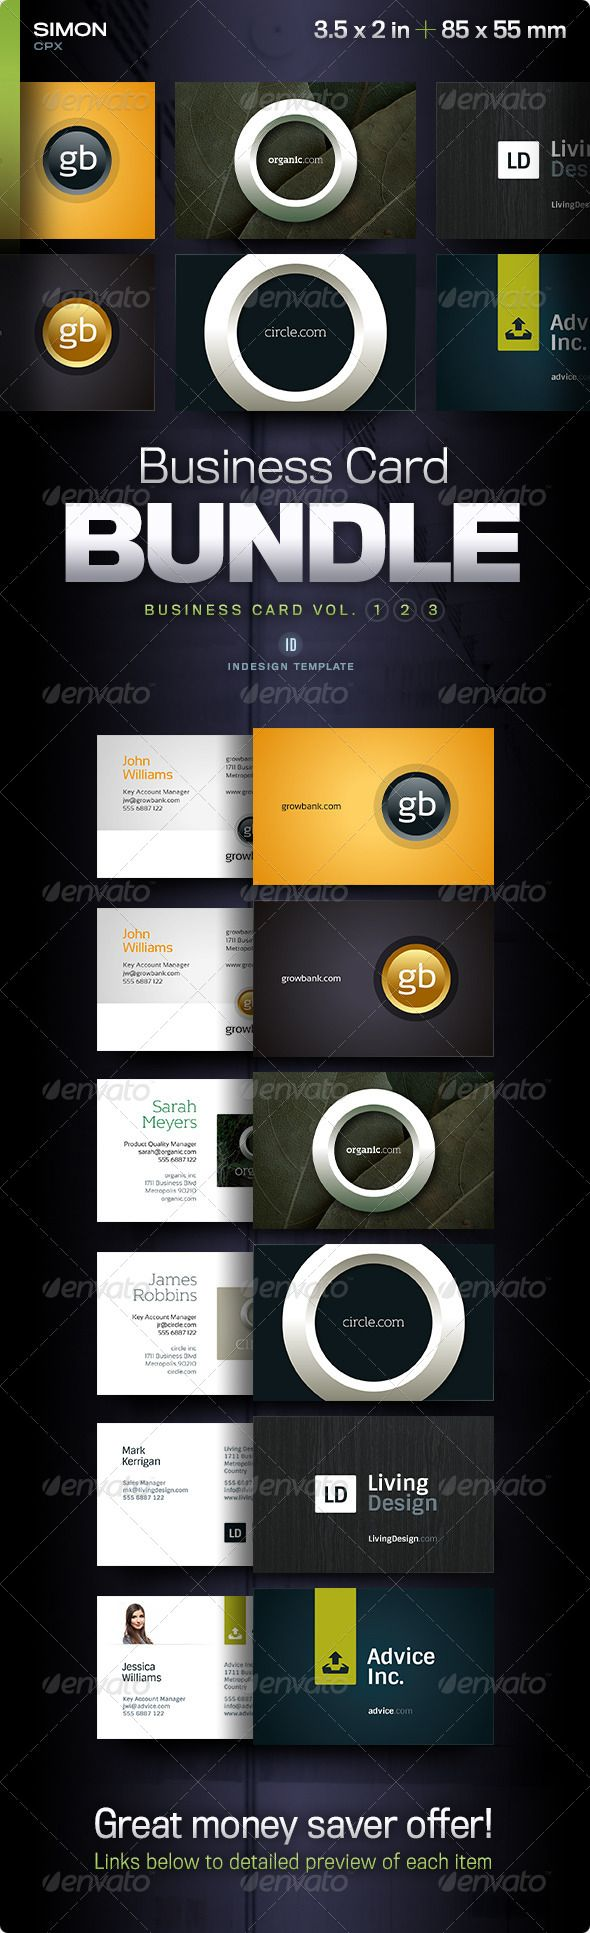 Business Card Saver Image collections - Free Business Cards